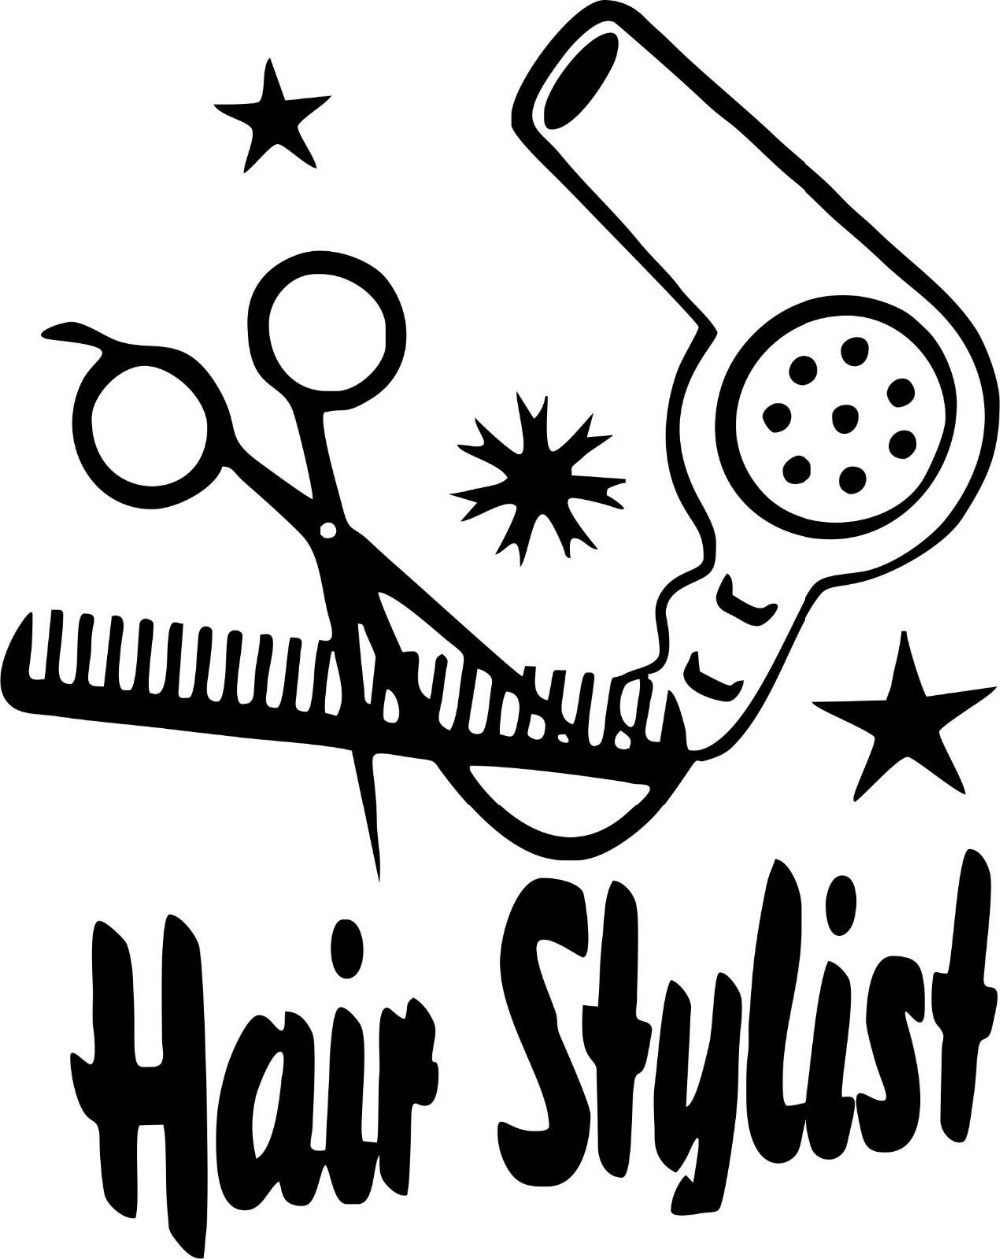 Black and white scissors and blowdryer clipart picture free Blow dryer and scissors clipart 7 » Clipart Portal picture free